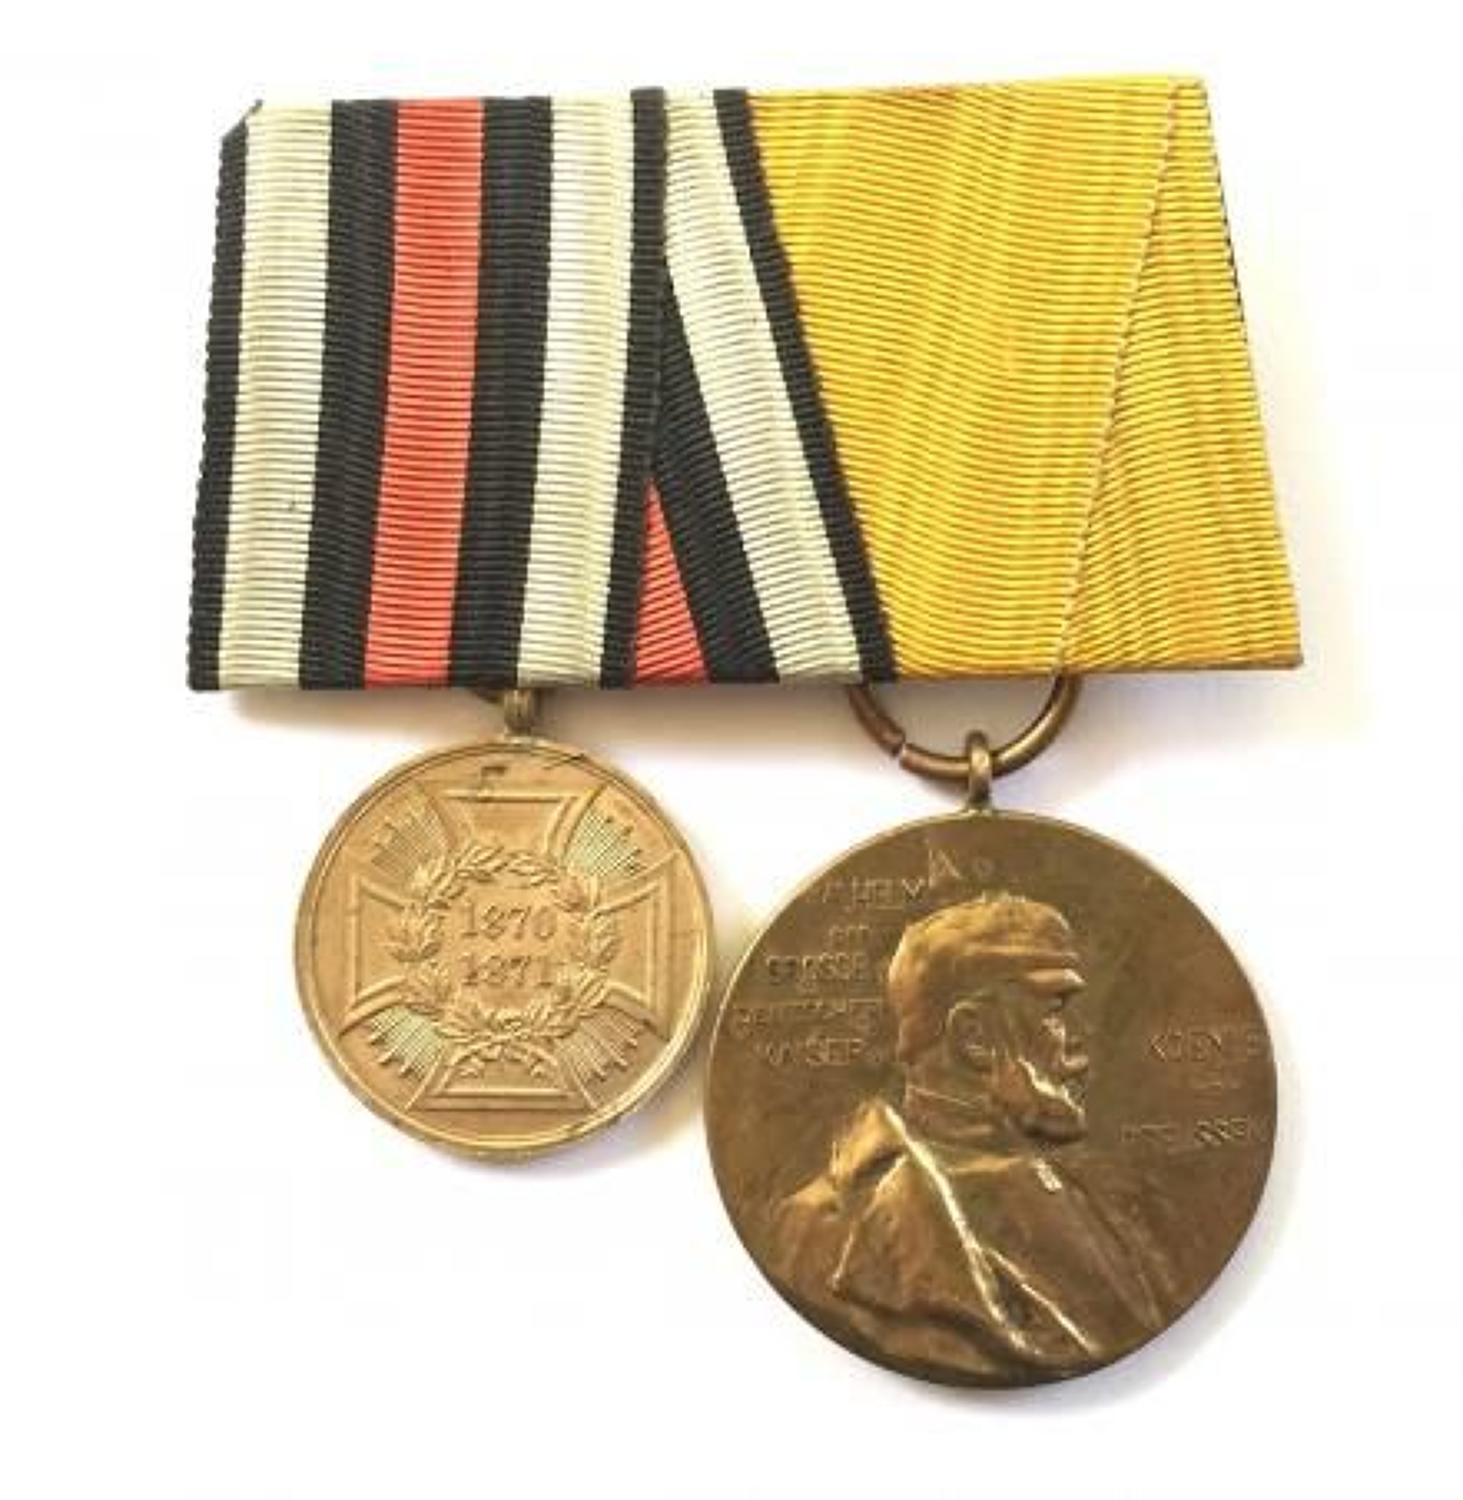 1871 Franco Prussian War Medal For Combatants Pair of Medals.